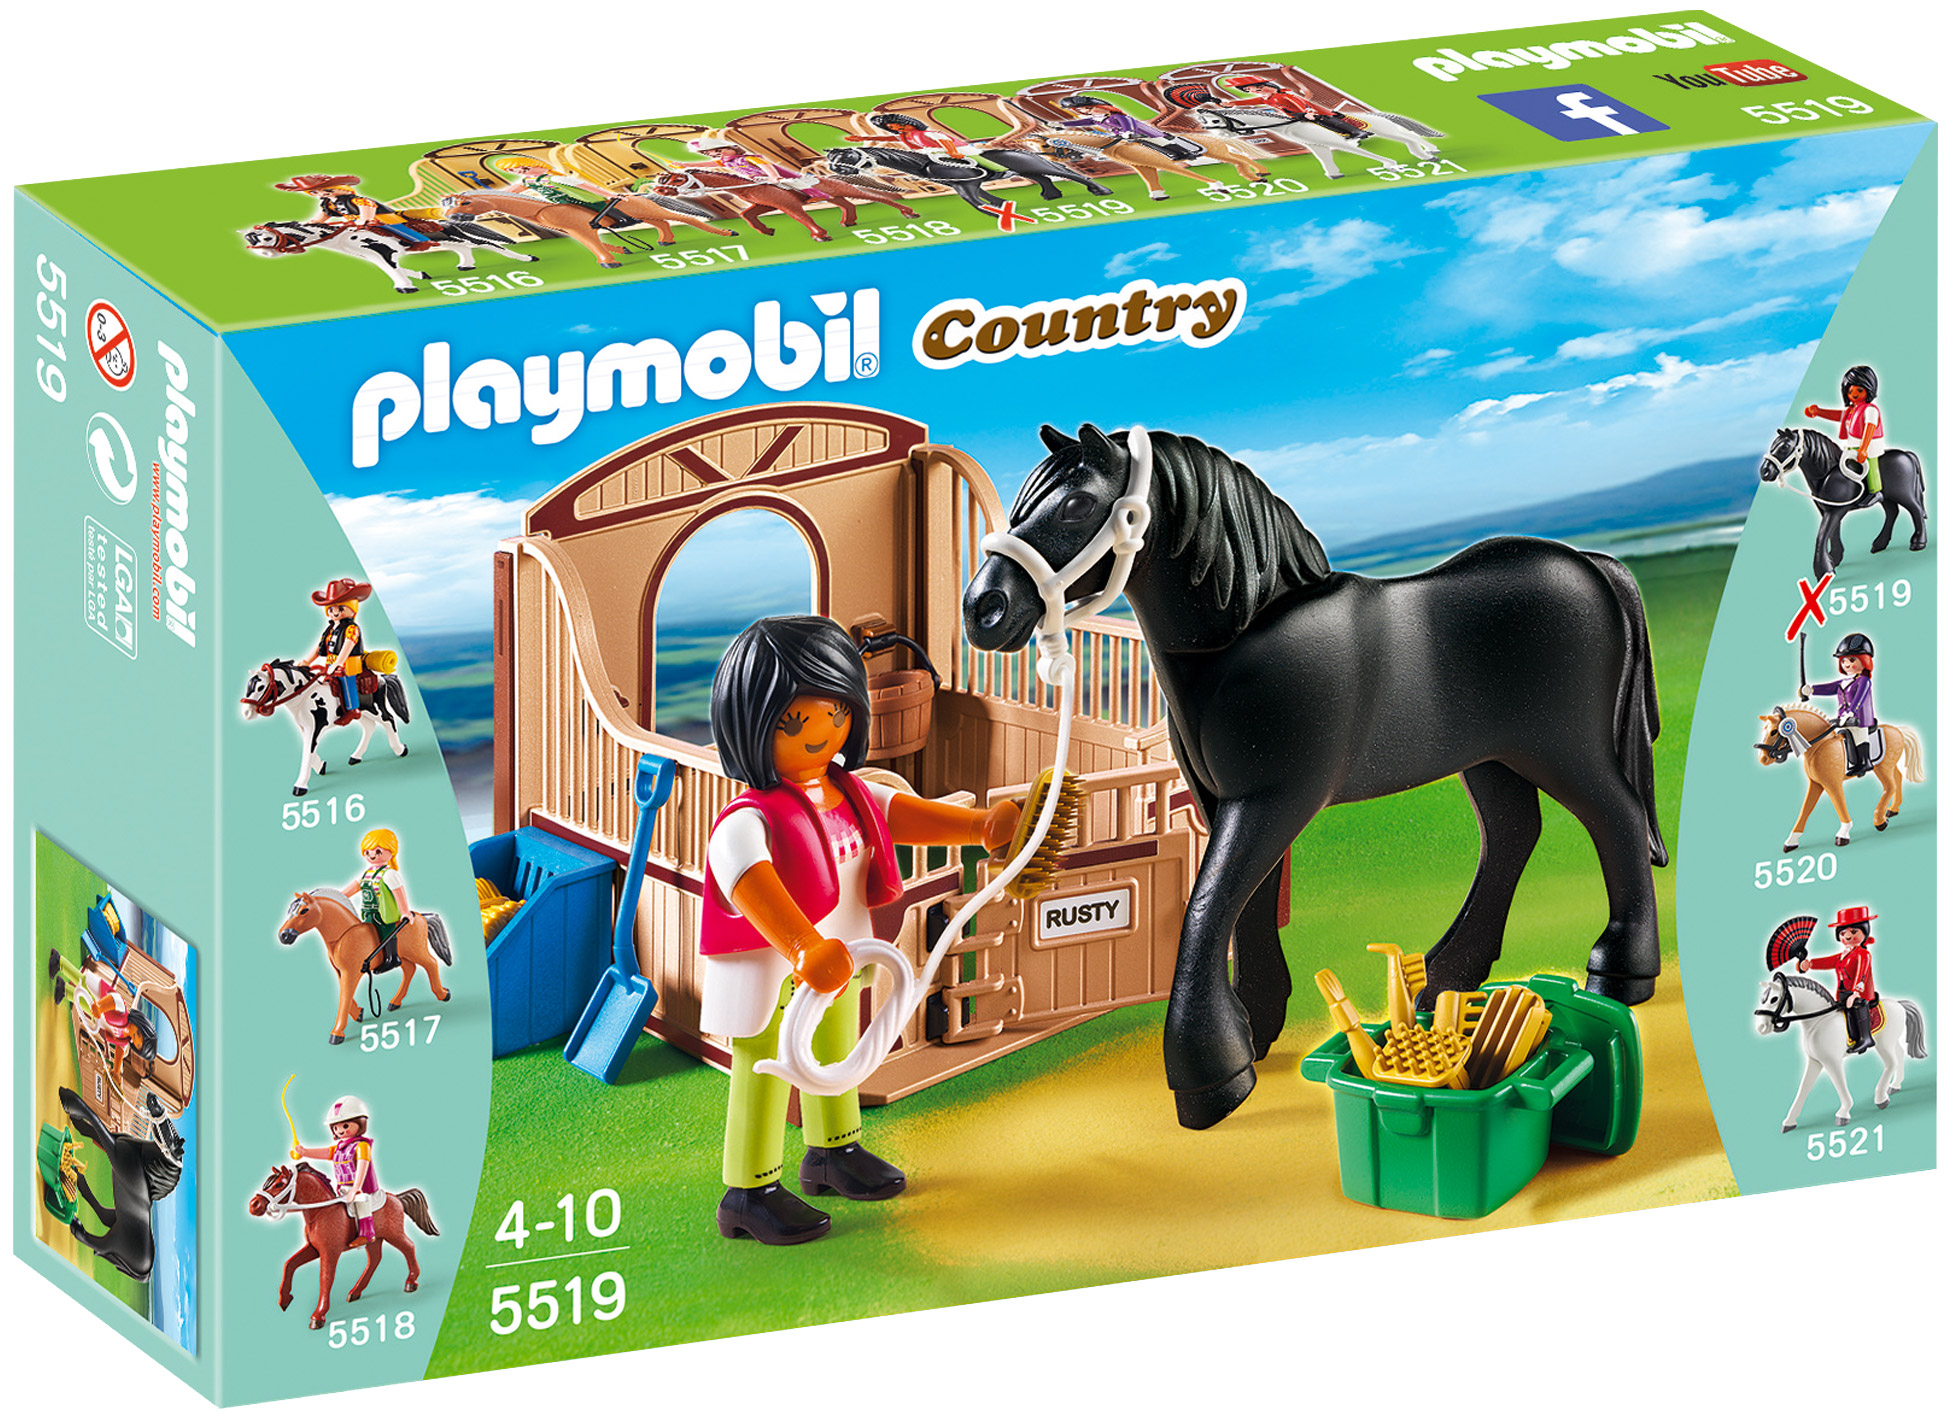 Playmobil country 5519 pas cher cheval frison et cuy re - Pferde playmobil ...